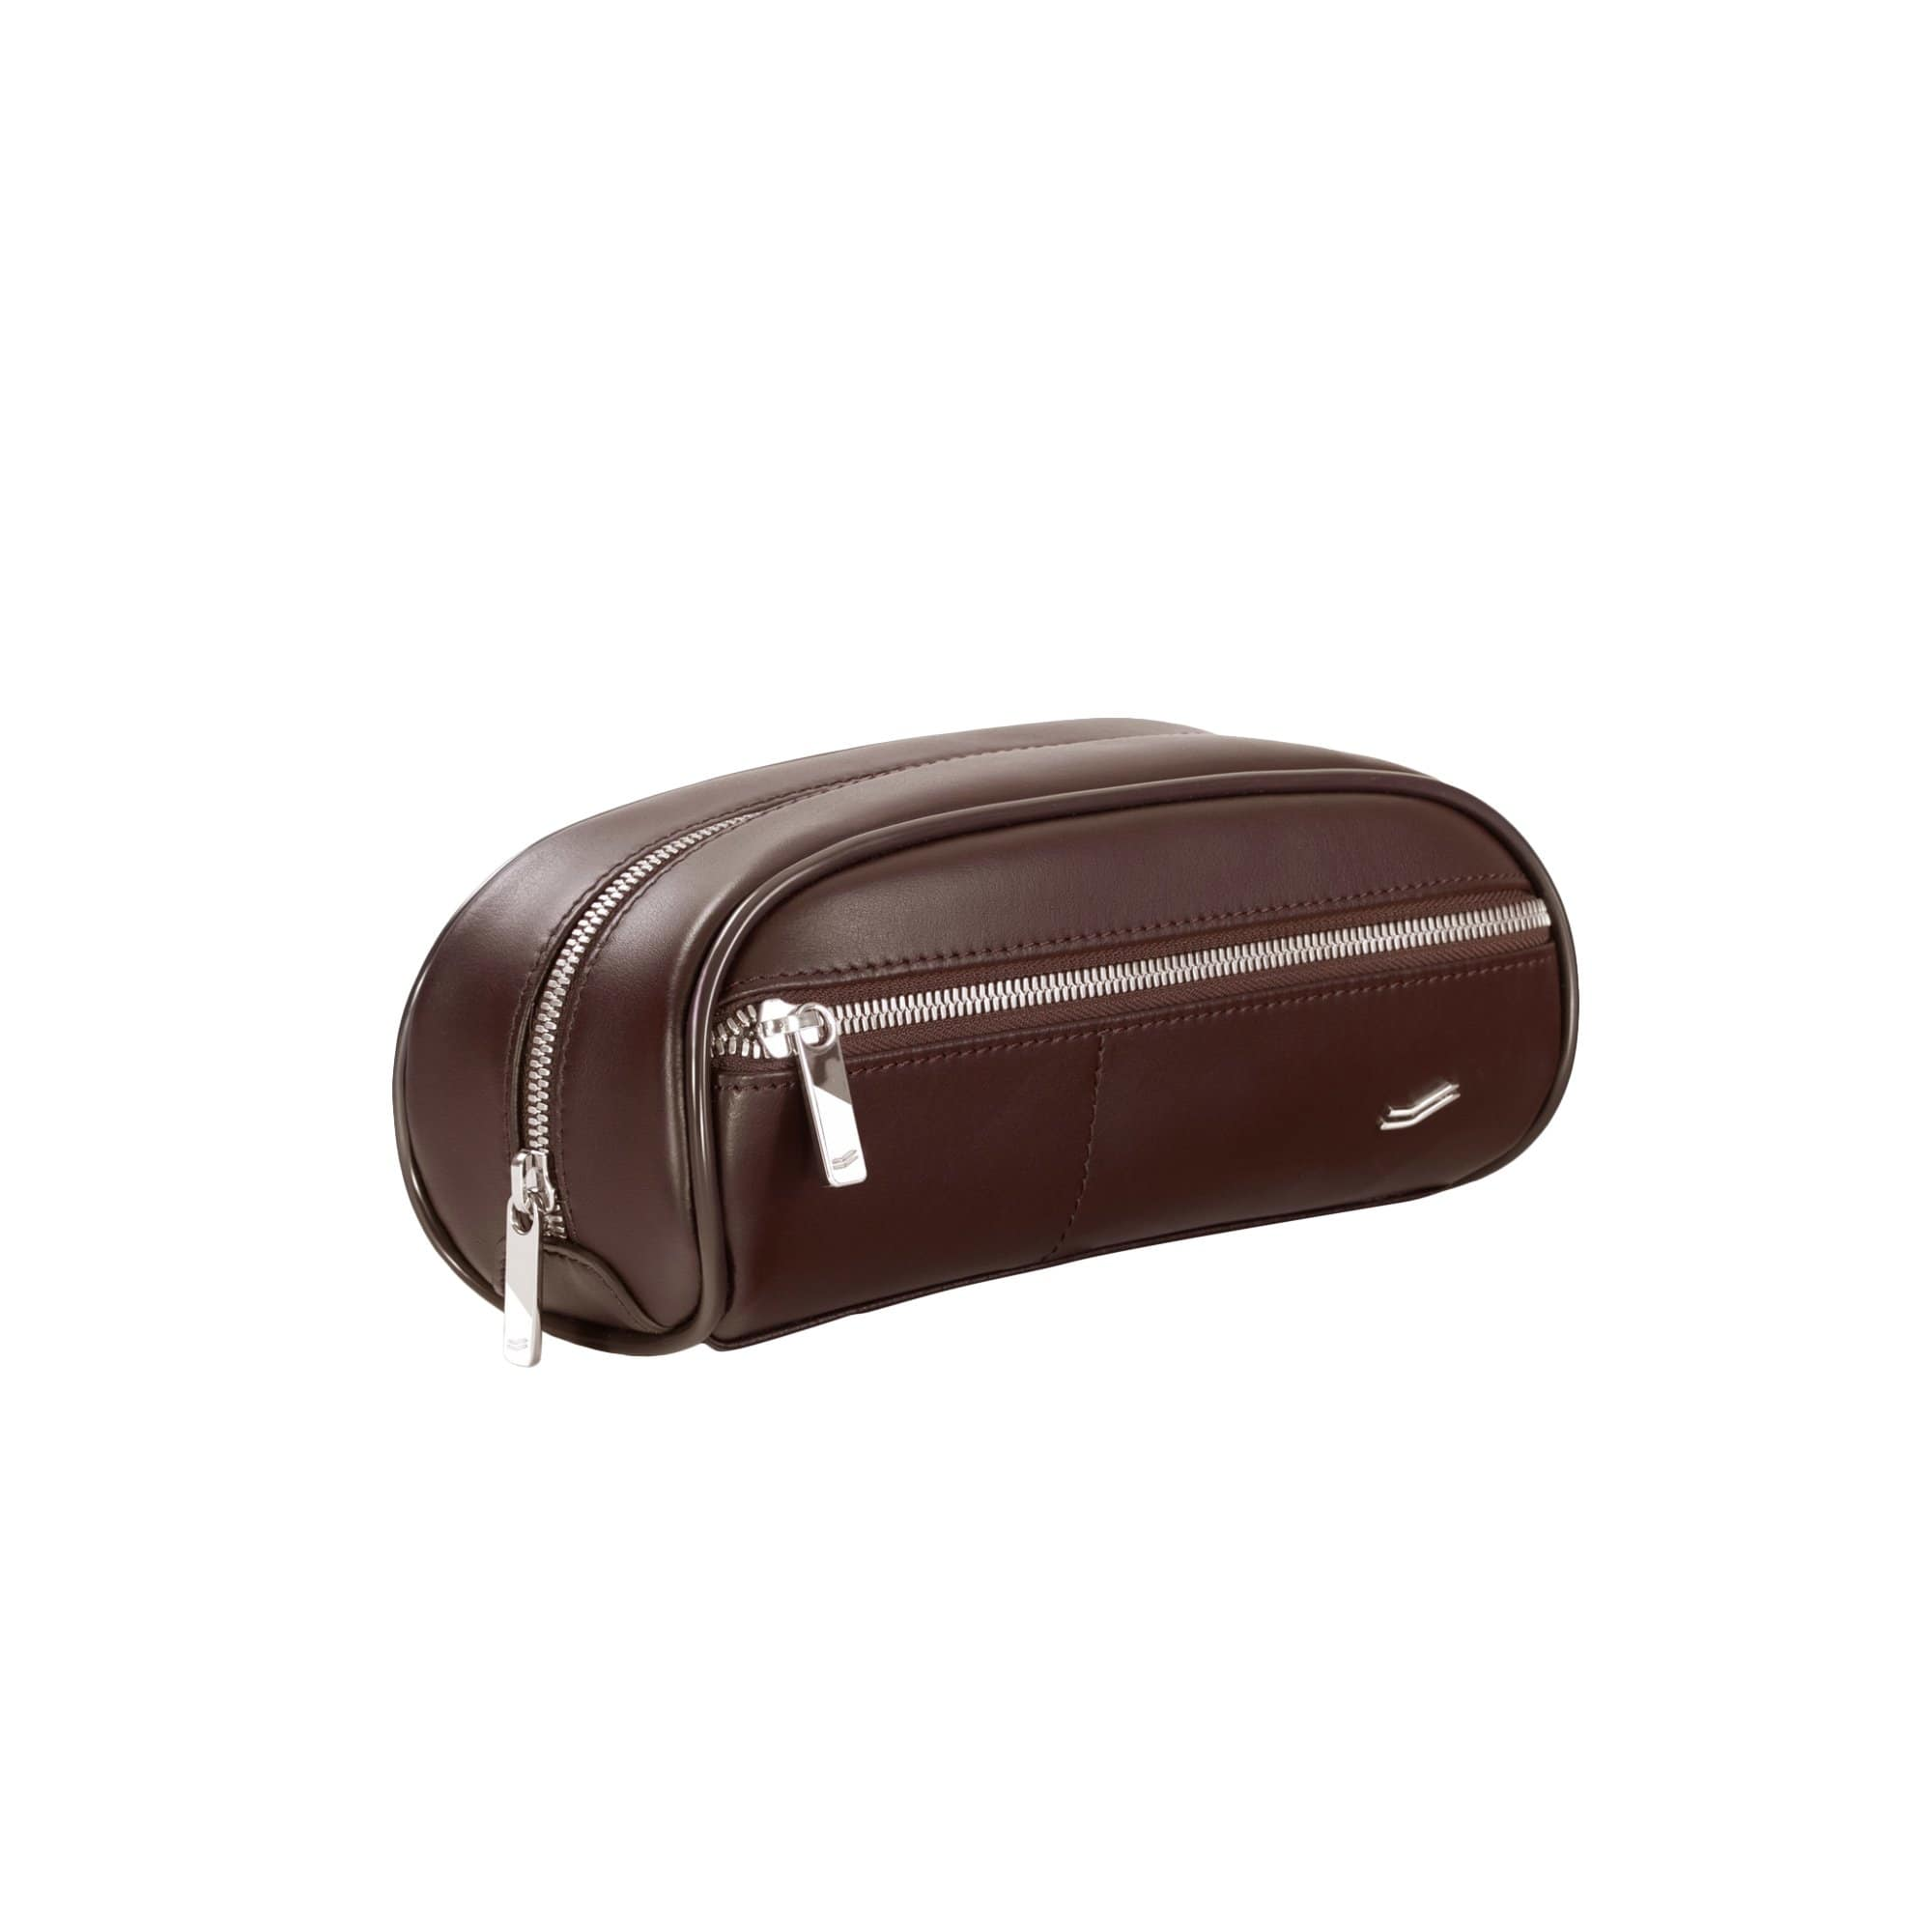 Vocier Accessories F12 Leather Dopp Kit